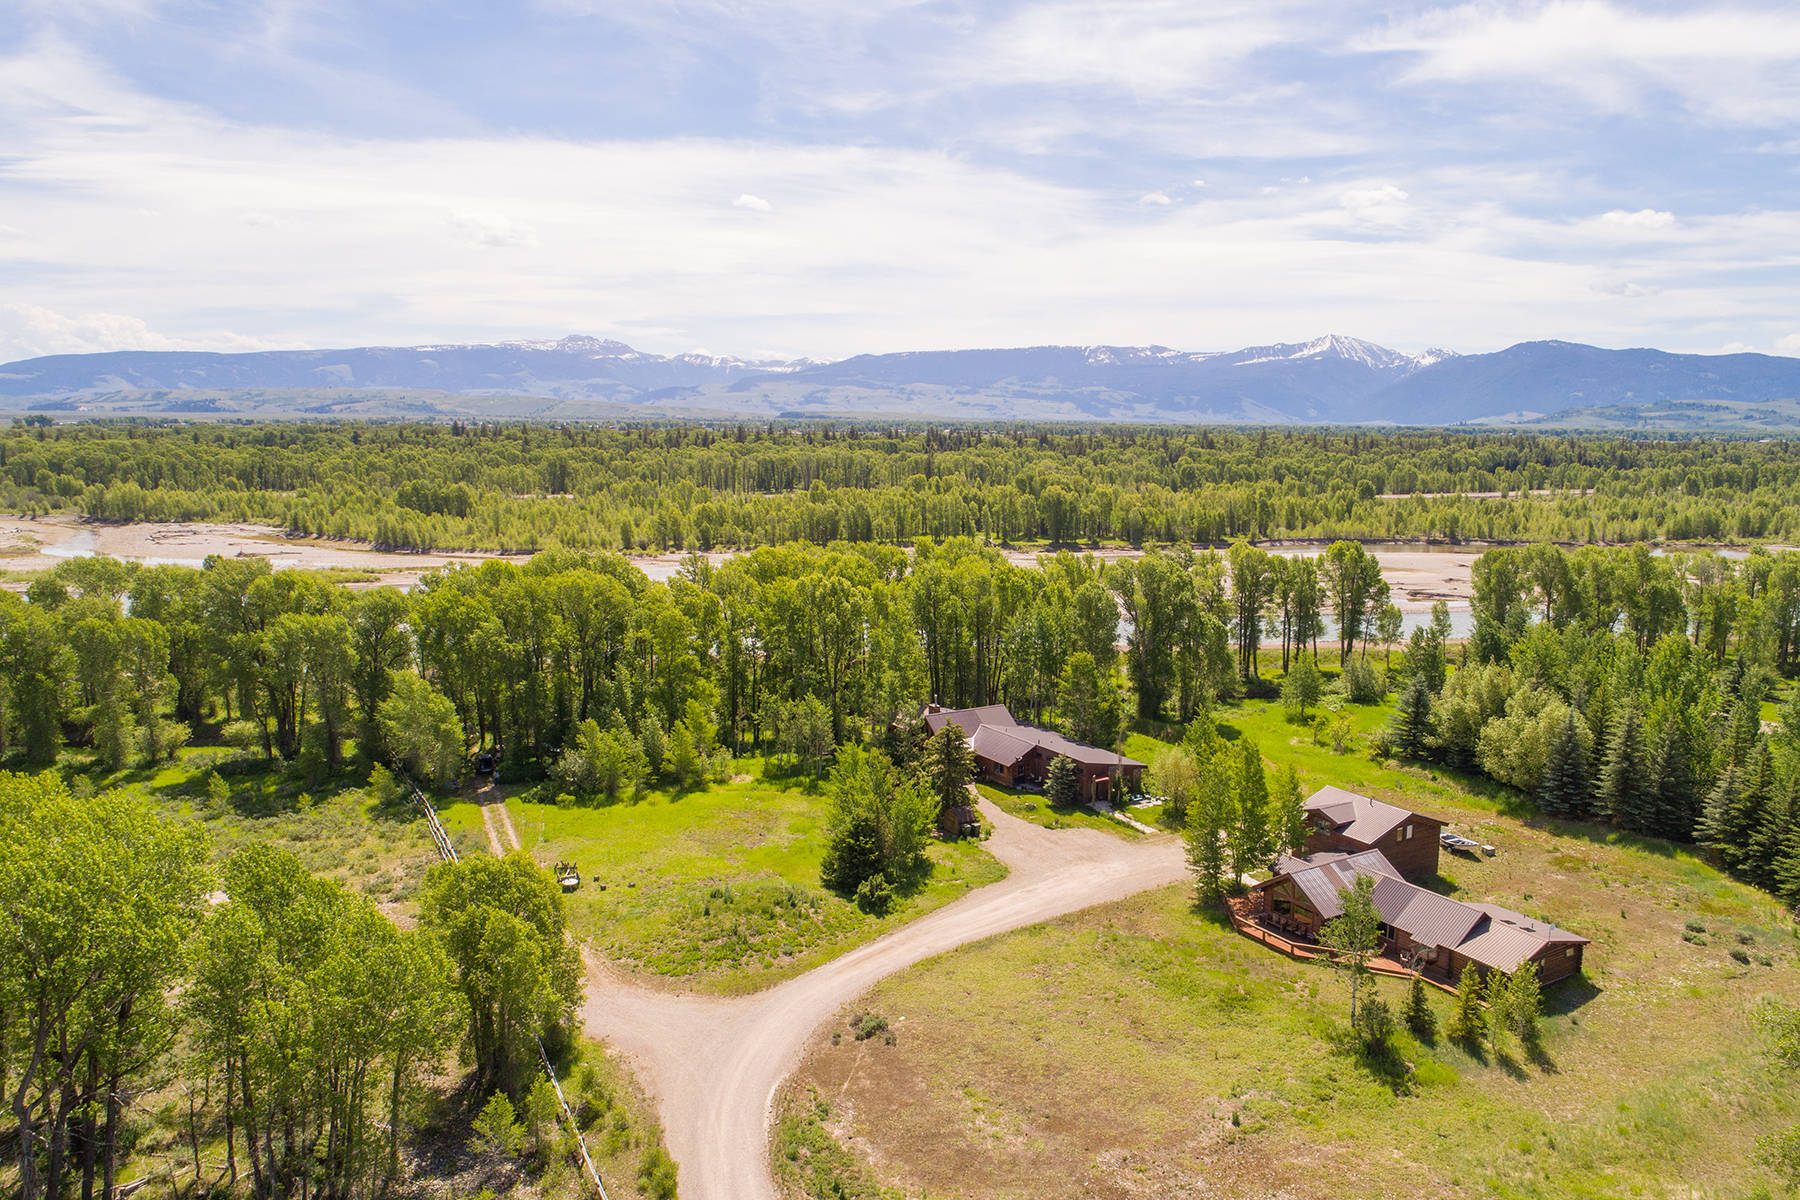 Property for Sale at Snake River Frontage and Grand Teton Views 1250 W Woody Rd Teton Village, Wyoming 83025 United States